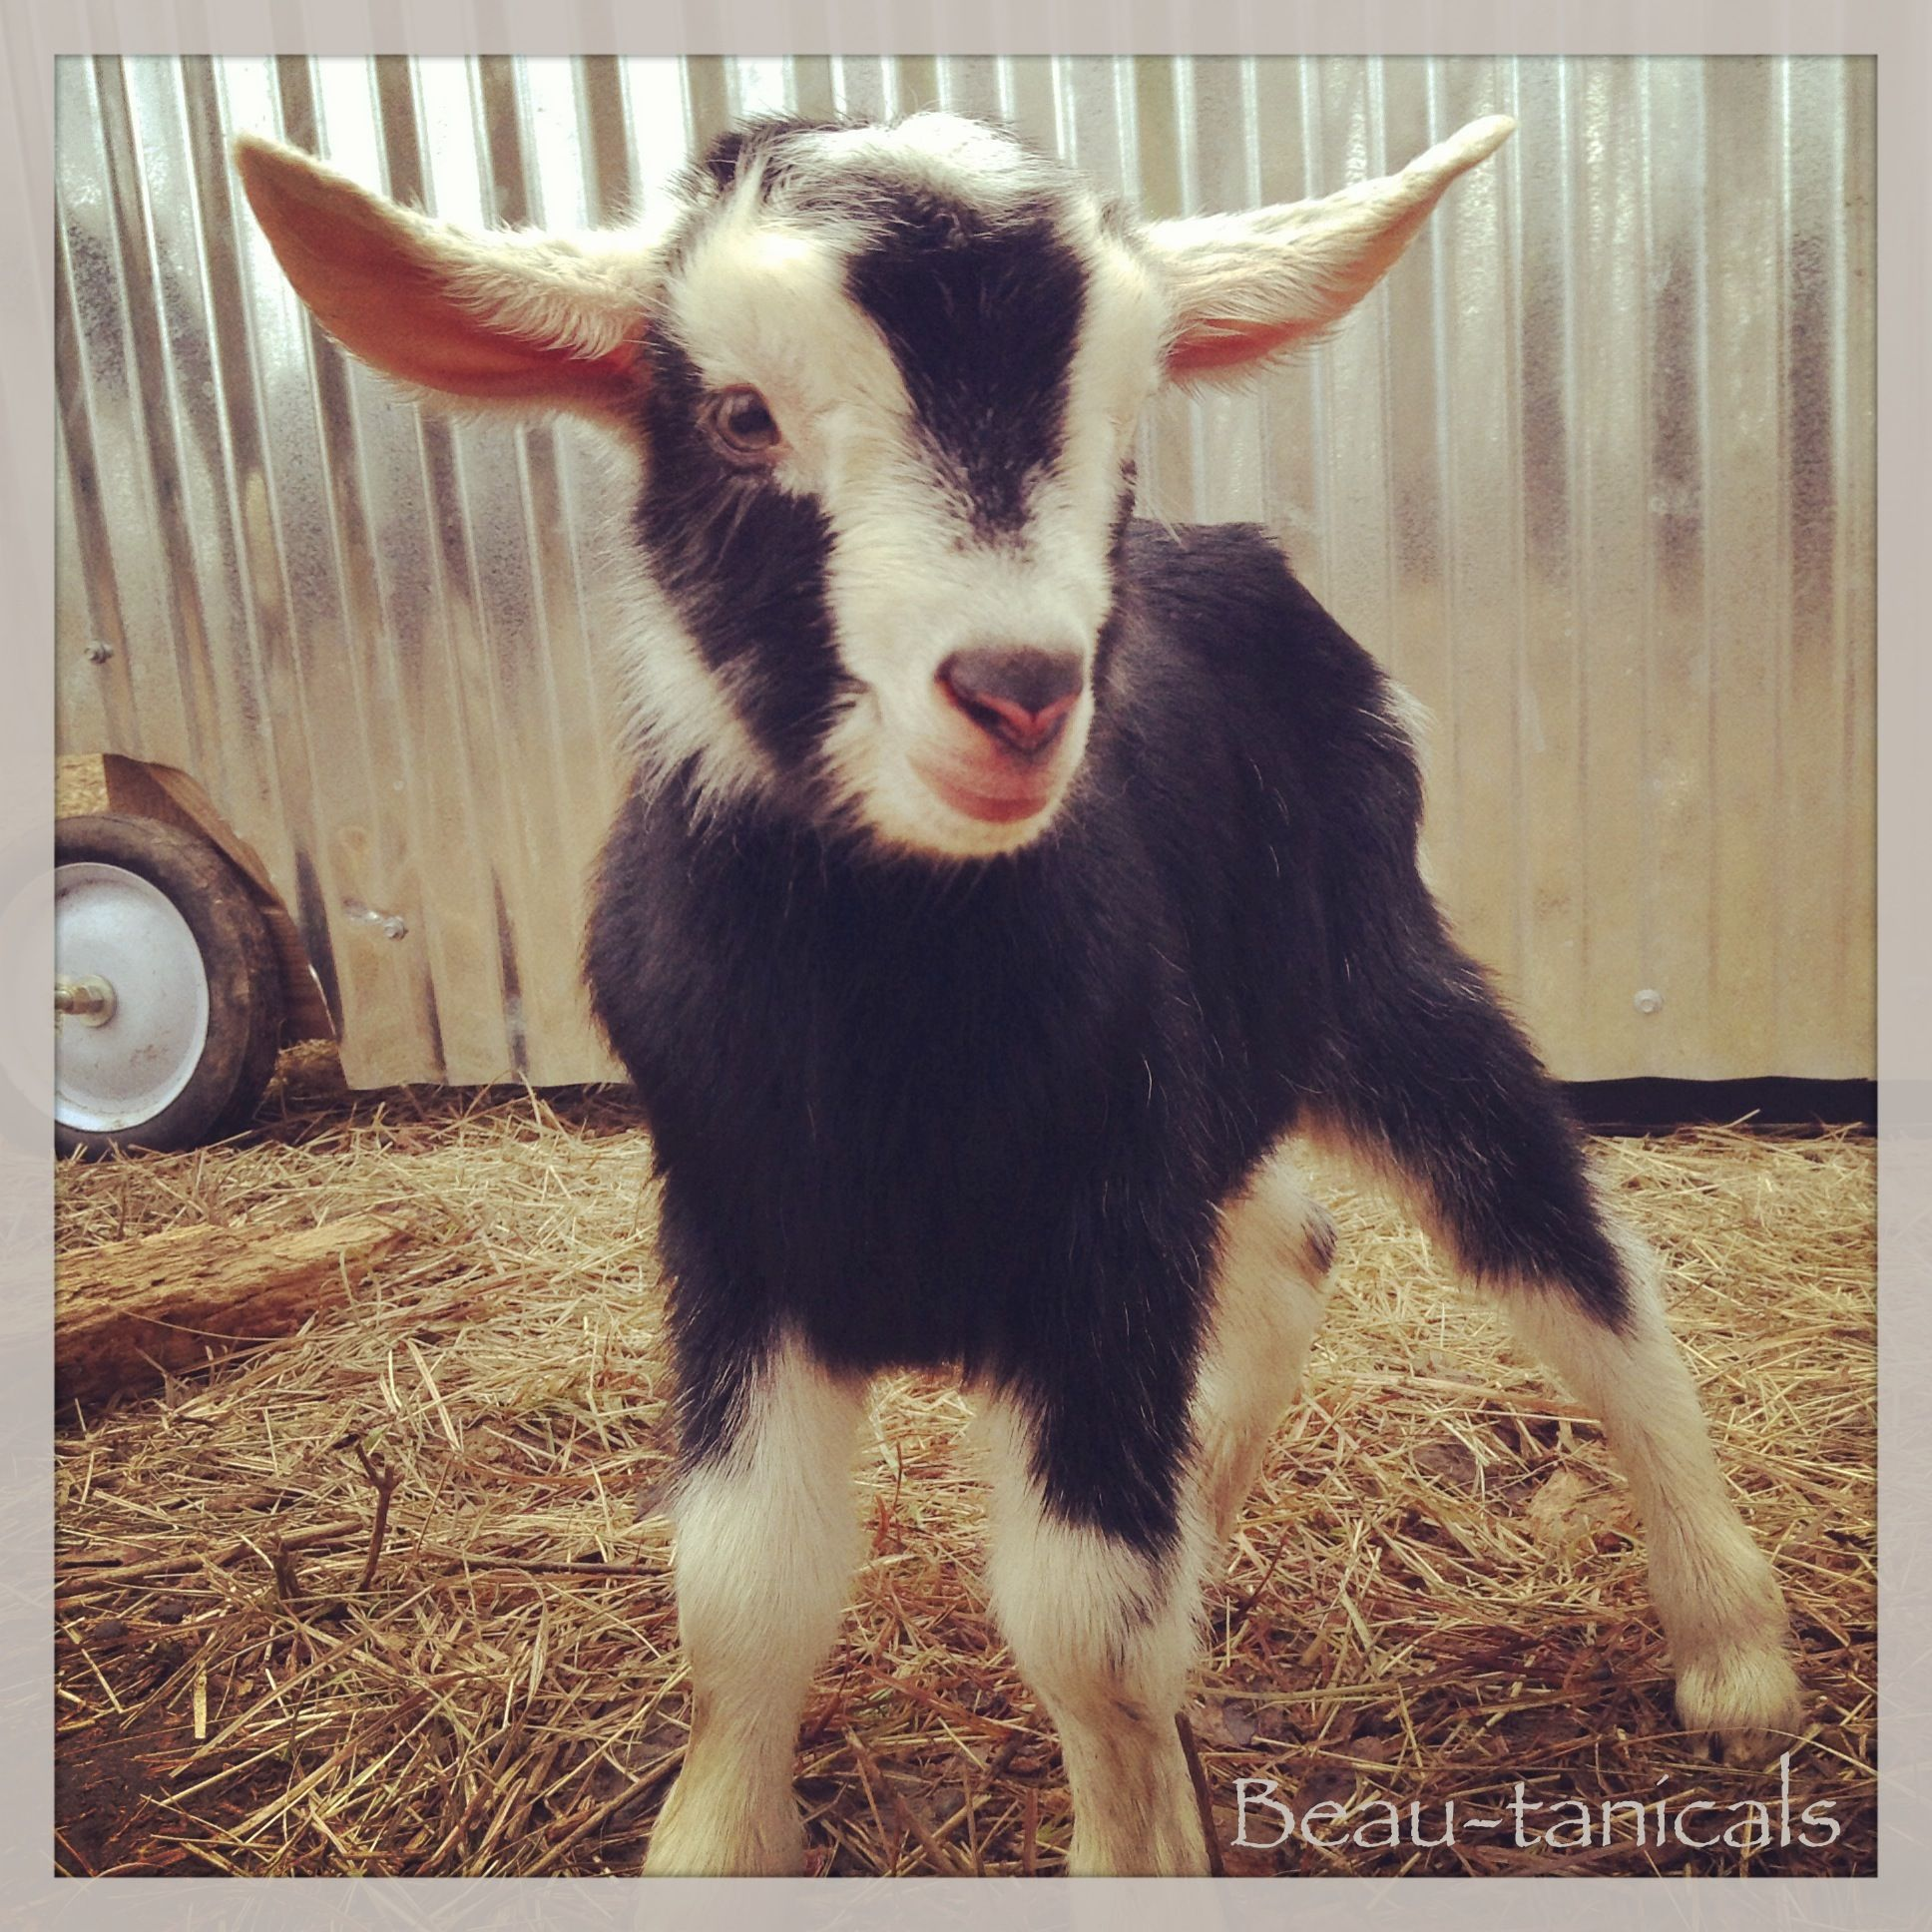 Our New Little Alpine Nubian Goat Kid Baby Goats